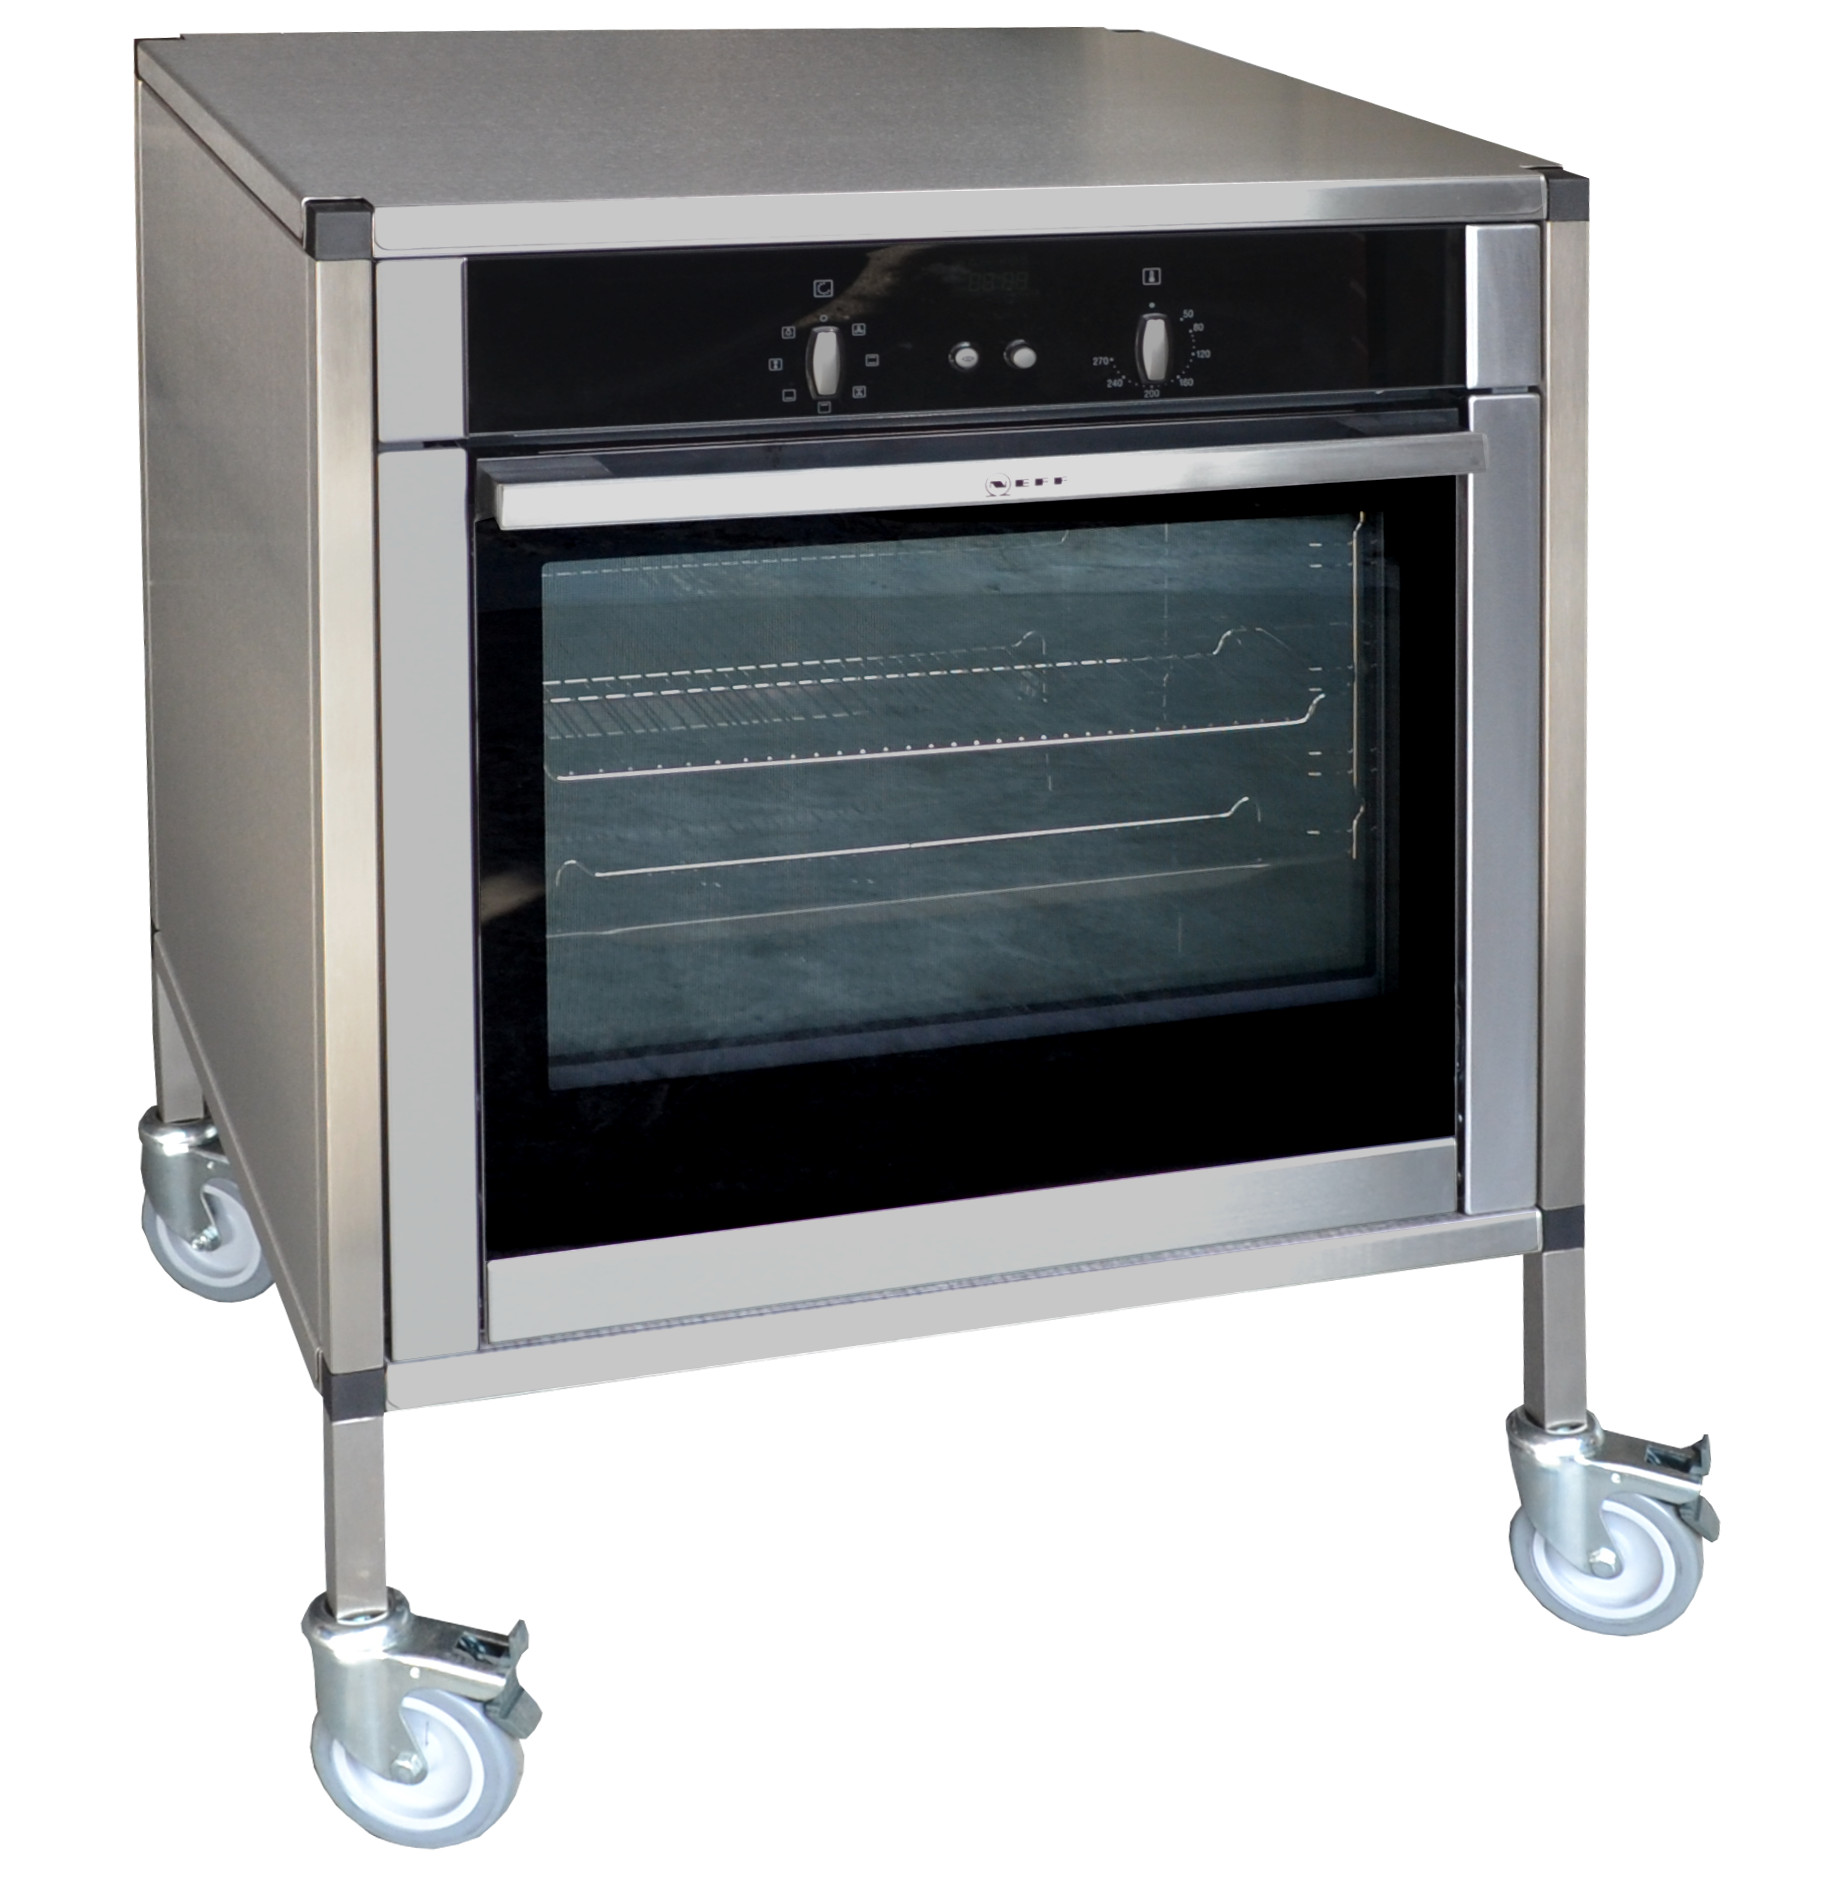 Oven Cook Station Compact